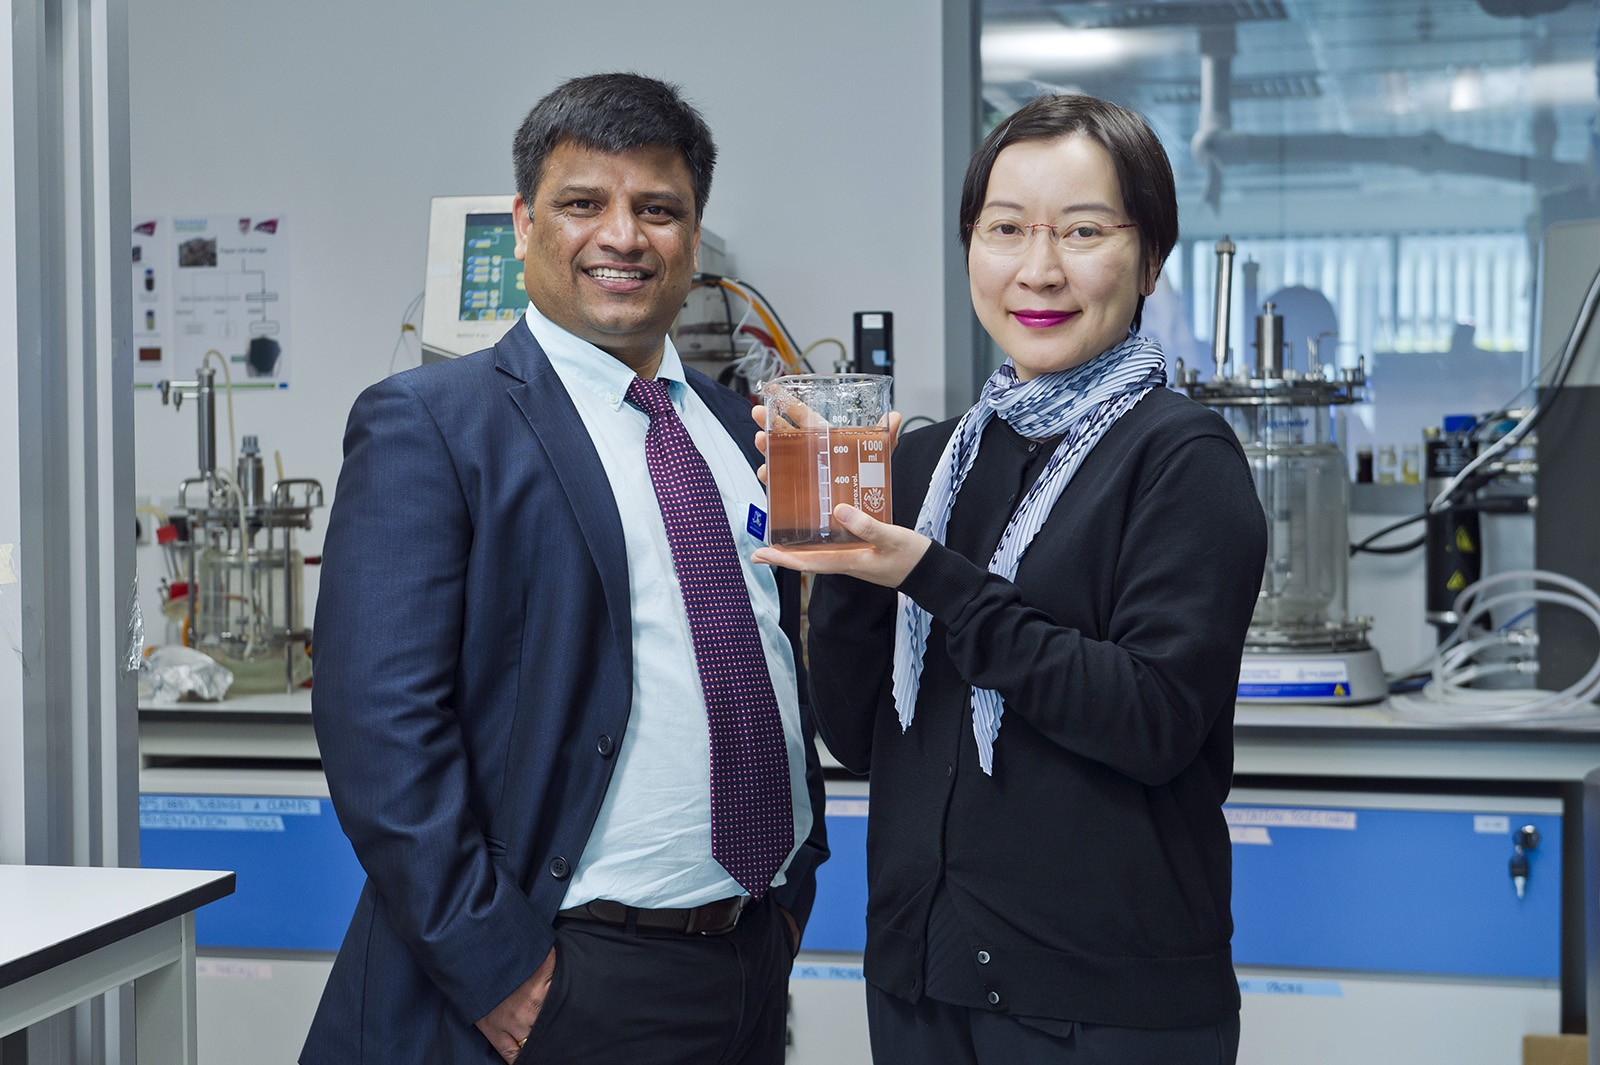 Dr Carol Lin (right) researches the use of cellulose based hydrogel to cultivate 10 distinct probiotic bacterial simultaneously in collaboration with Dr Srinivas Mettu at the University of Melbourne, Australia.